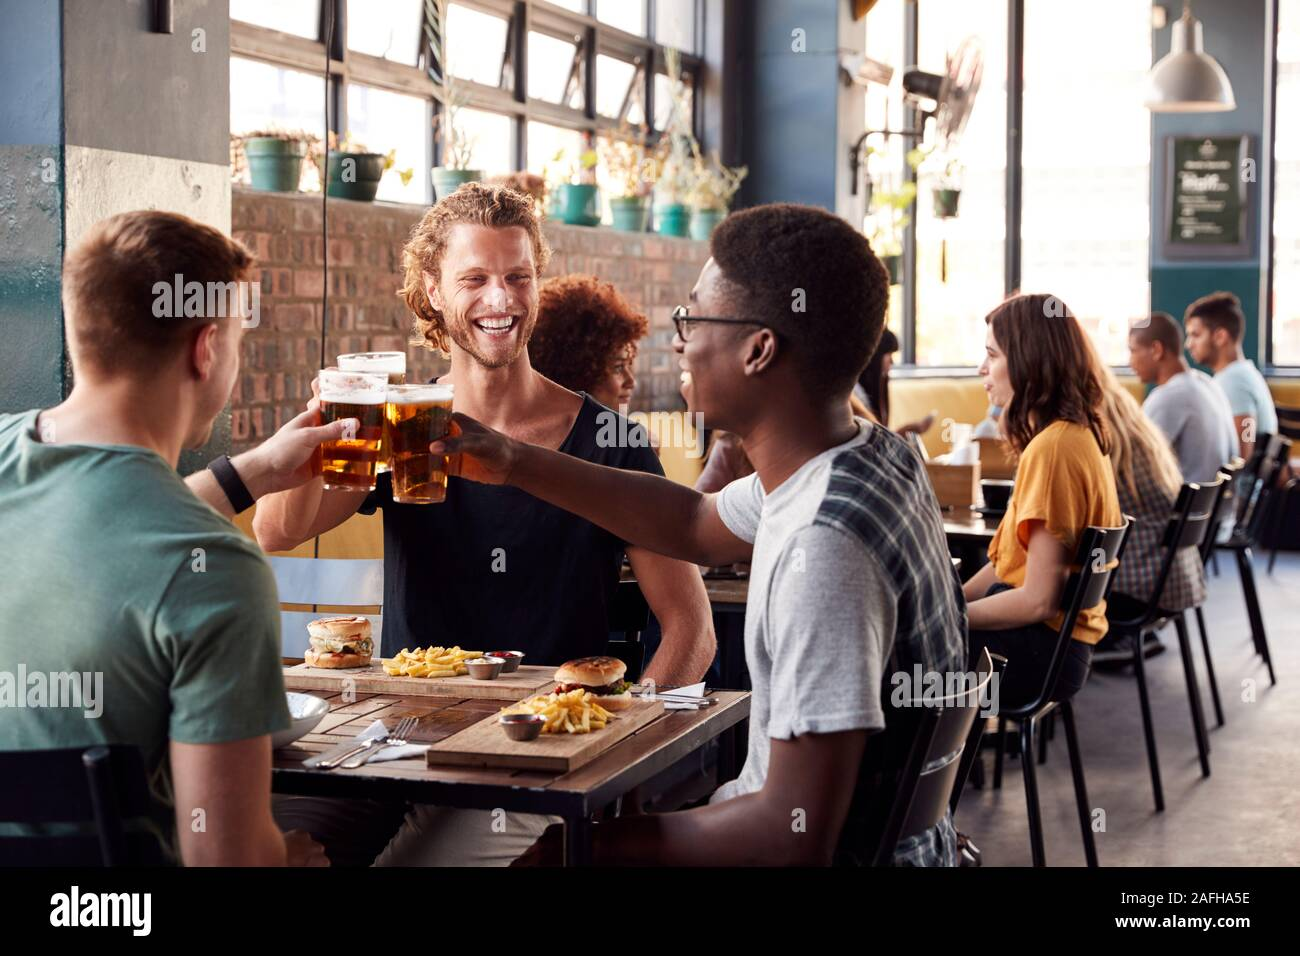 Three Young Male Friends Meeting For Drinks And Food Making A Toast In Restaurant Stock Photo